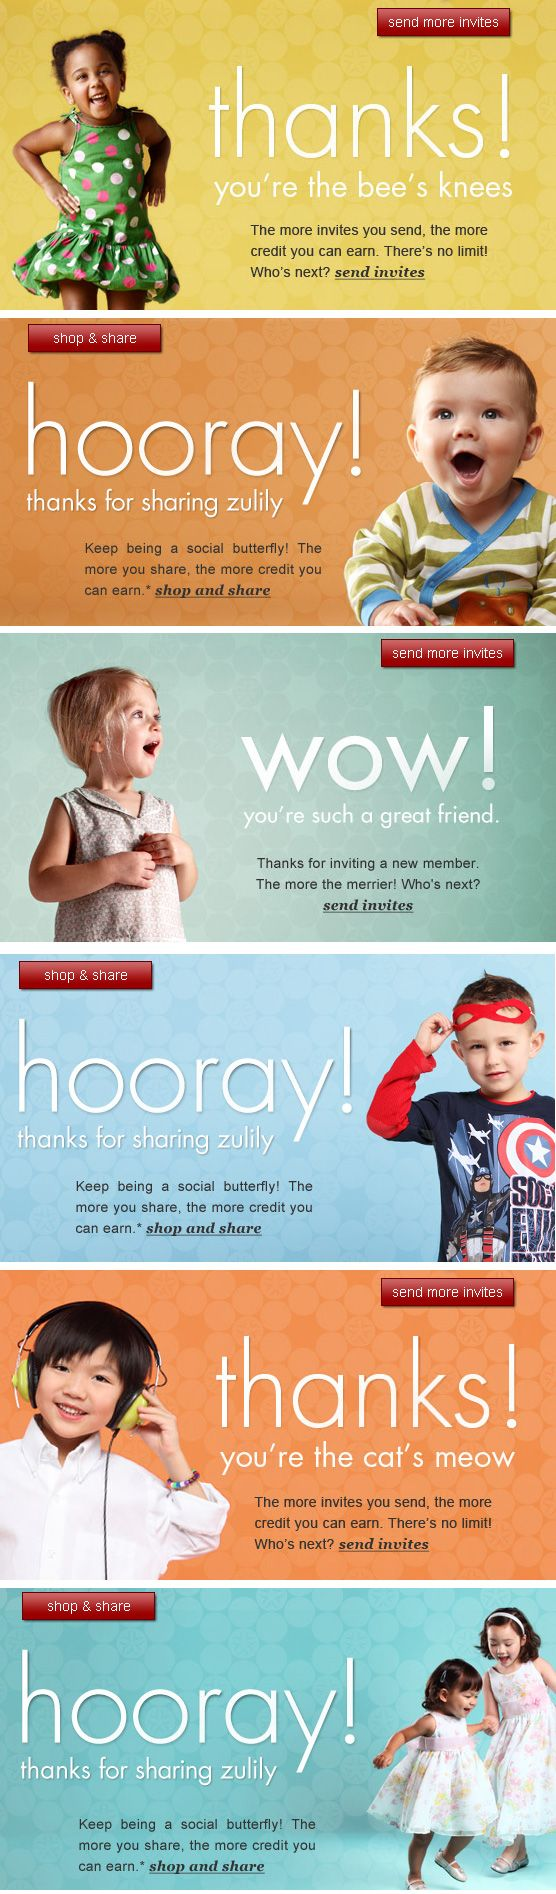 {Engaging Email Design} Zulily.com keeps their automated refer-a-friend emails creative to ensure their customers don't get bored with their re-occuring messages. Above our six examples of the same transactional email. Wonderful!